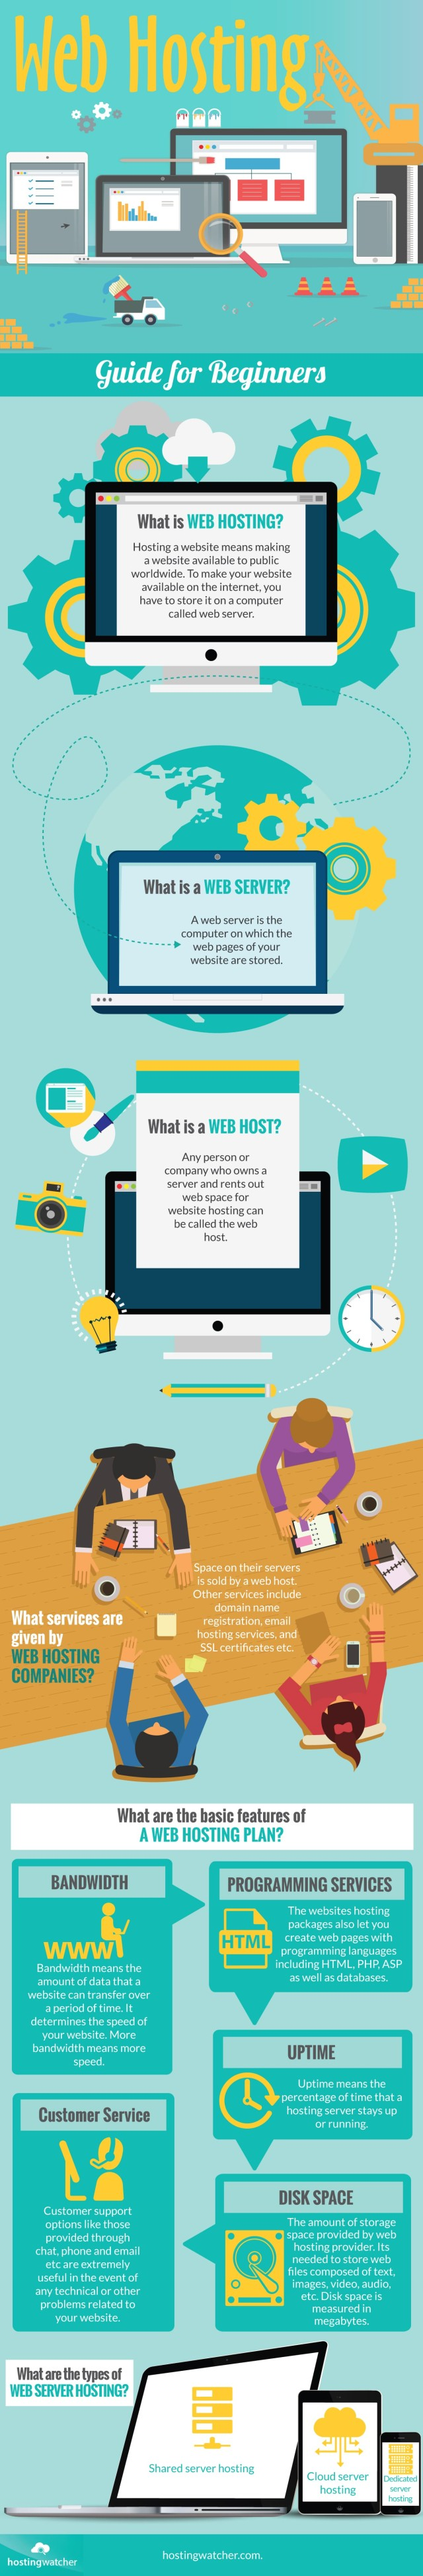 Financemagnate.co.uk - Web Hosting Infographic Guide